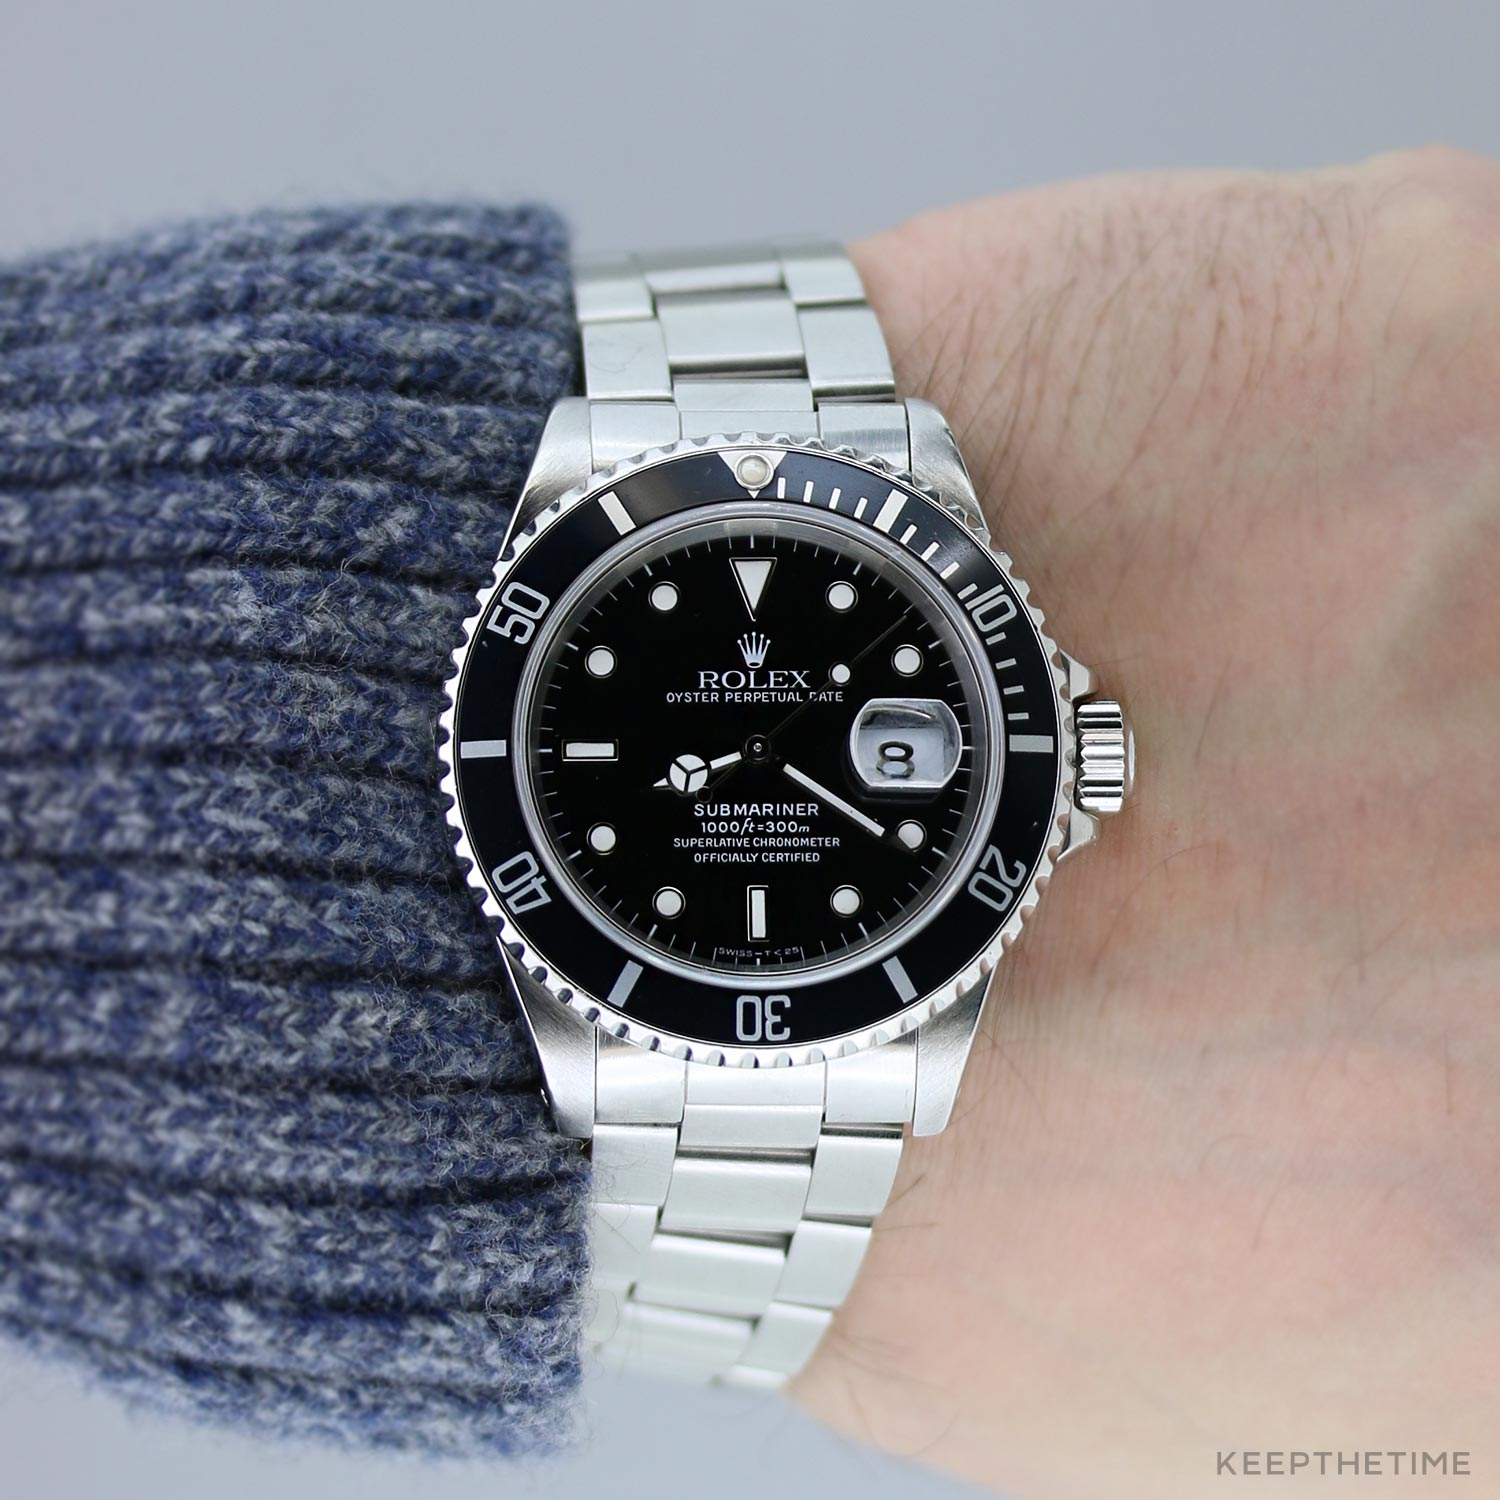 Certified Pre Owned >> Rolex Submariner 16610 Certified Pre-Owned | New-To-You ...